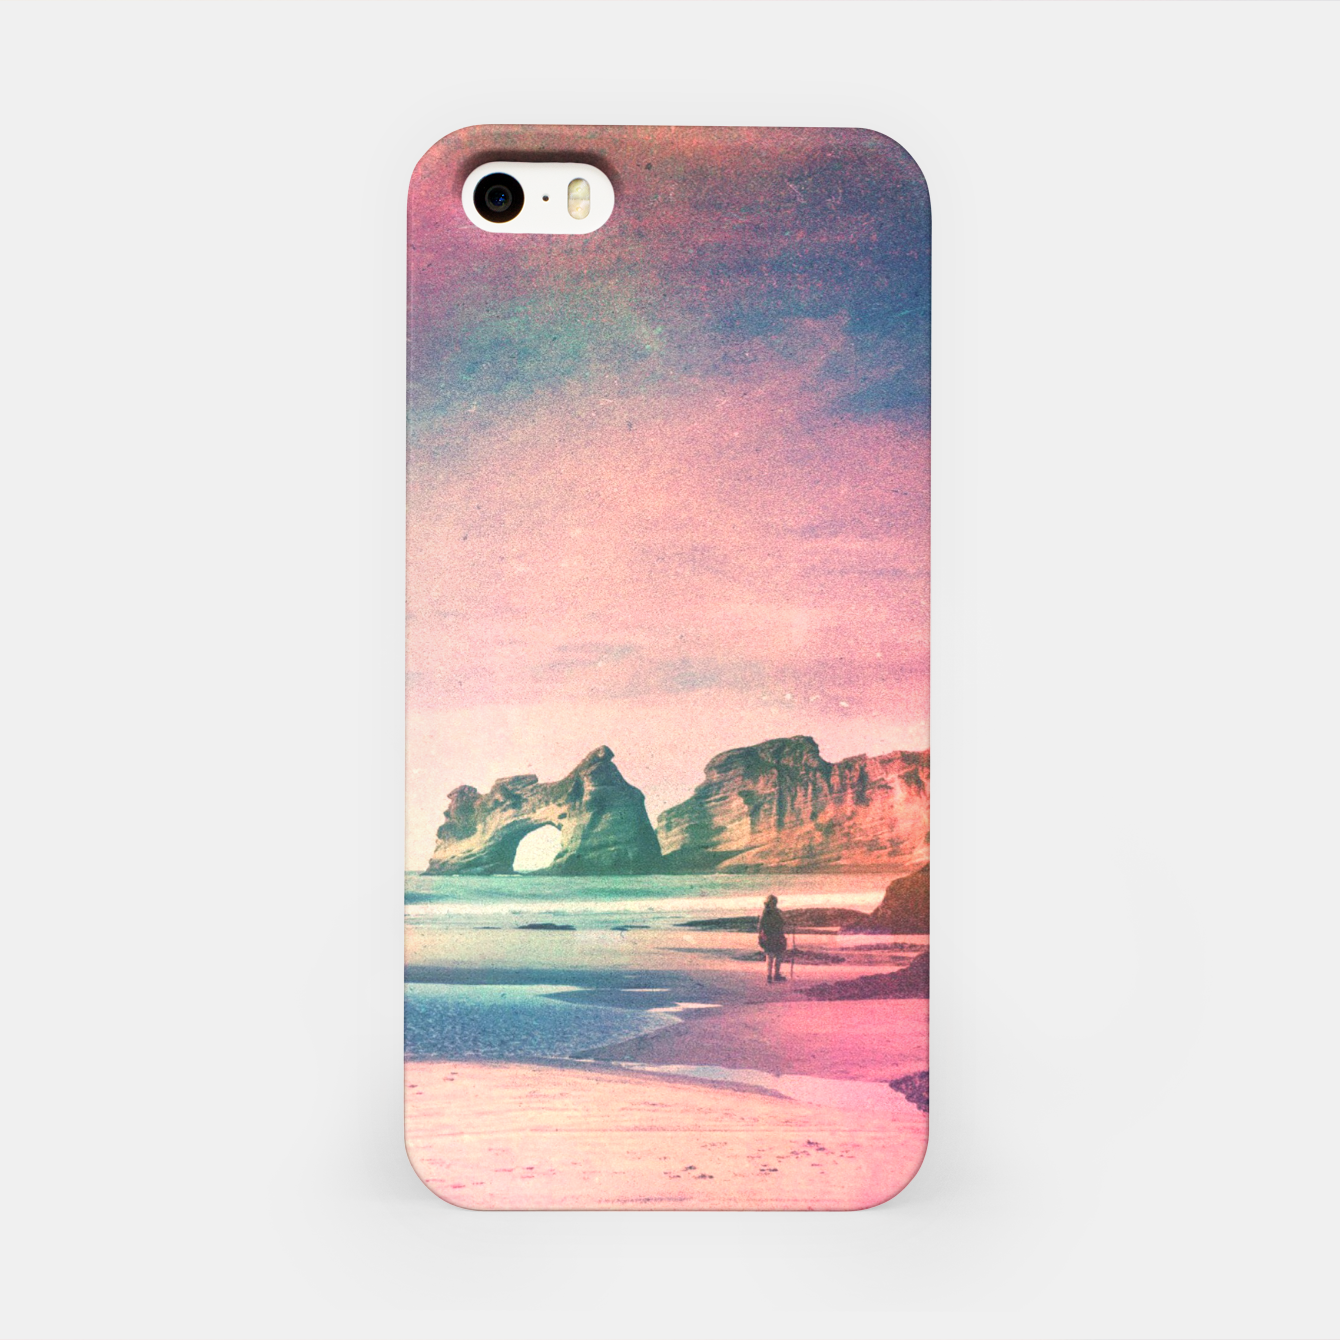 Foto The Traveler iPhone Case - Live Heroes